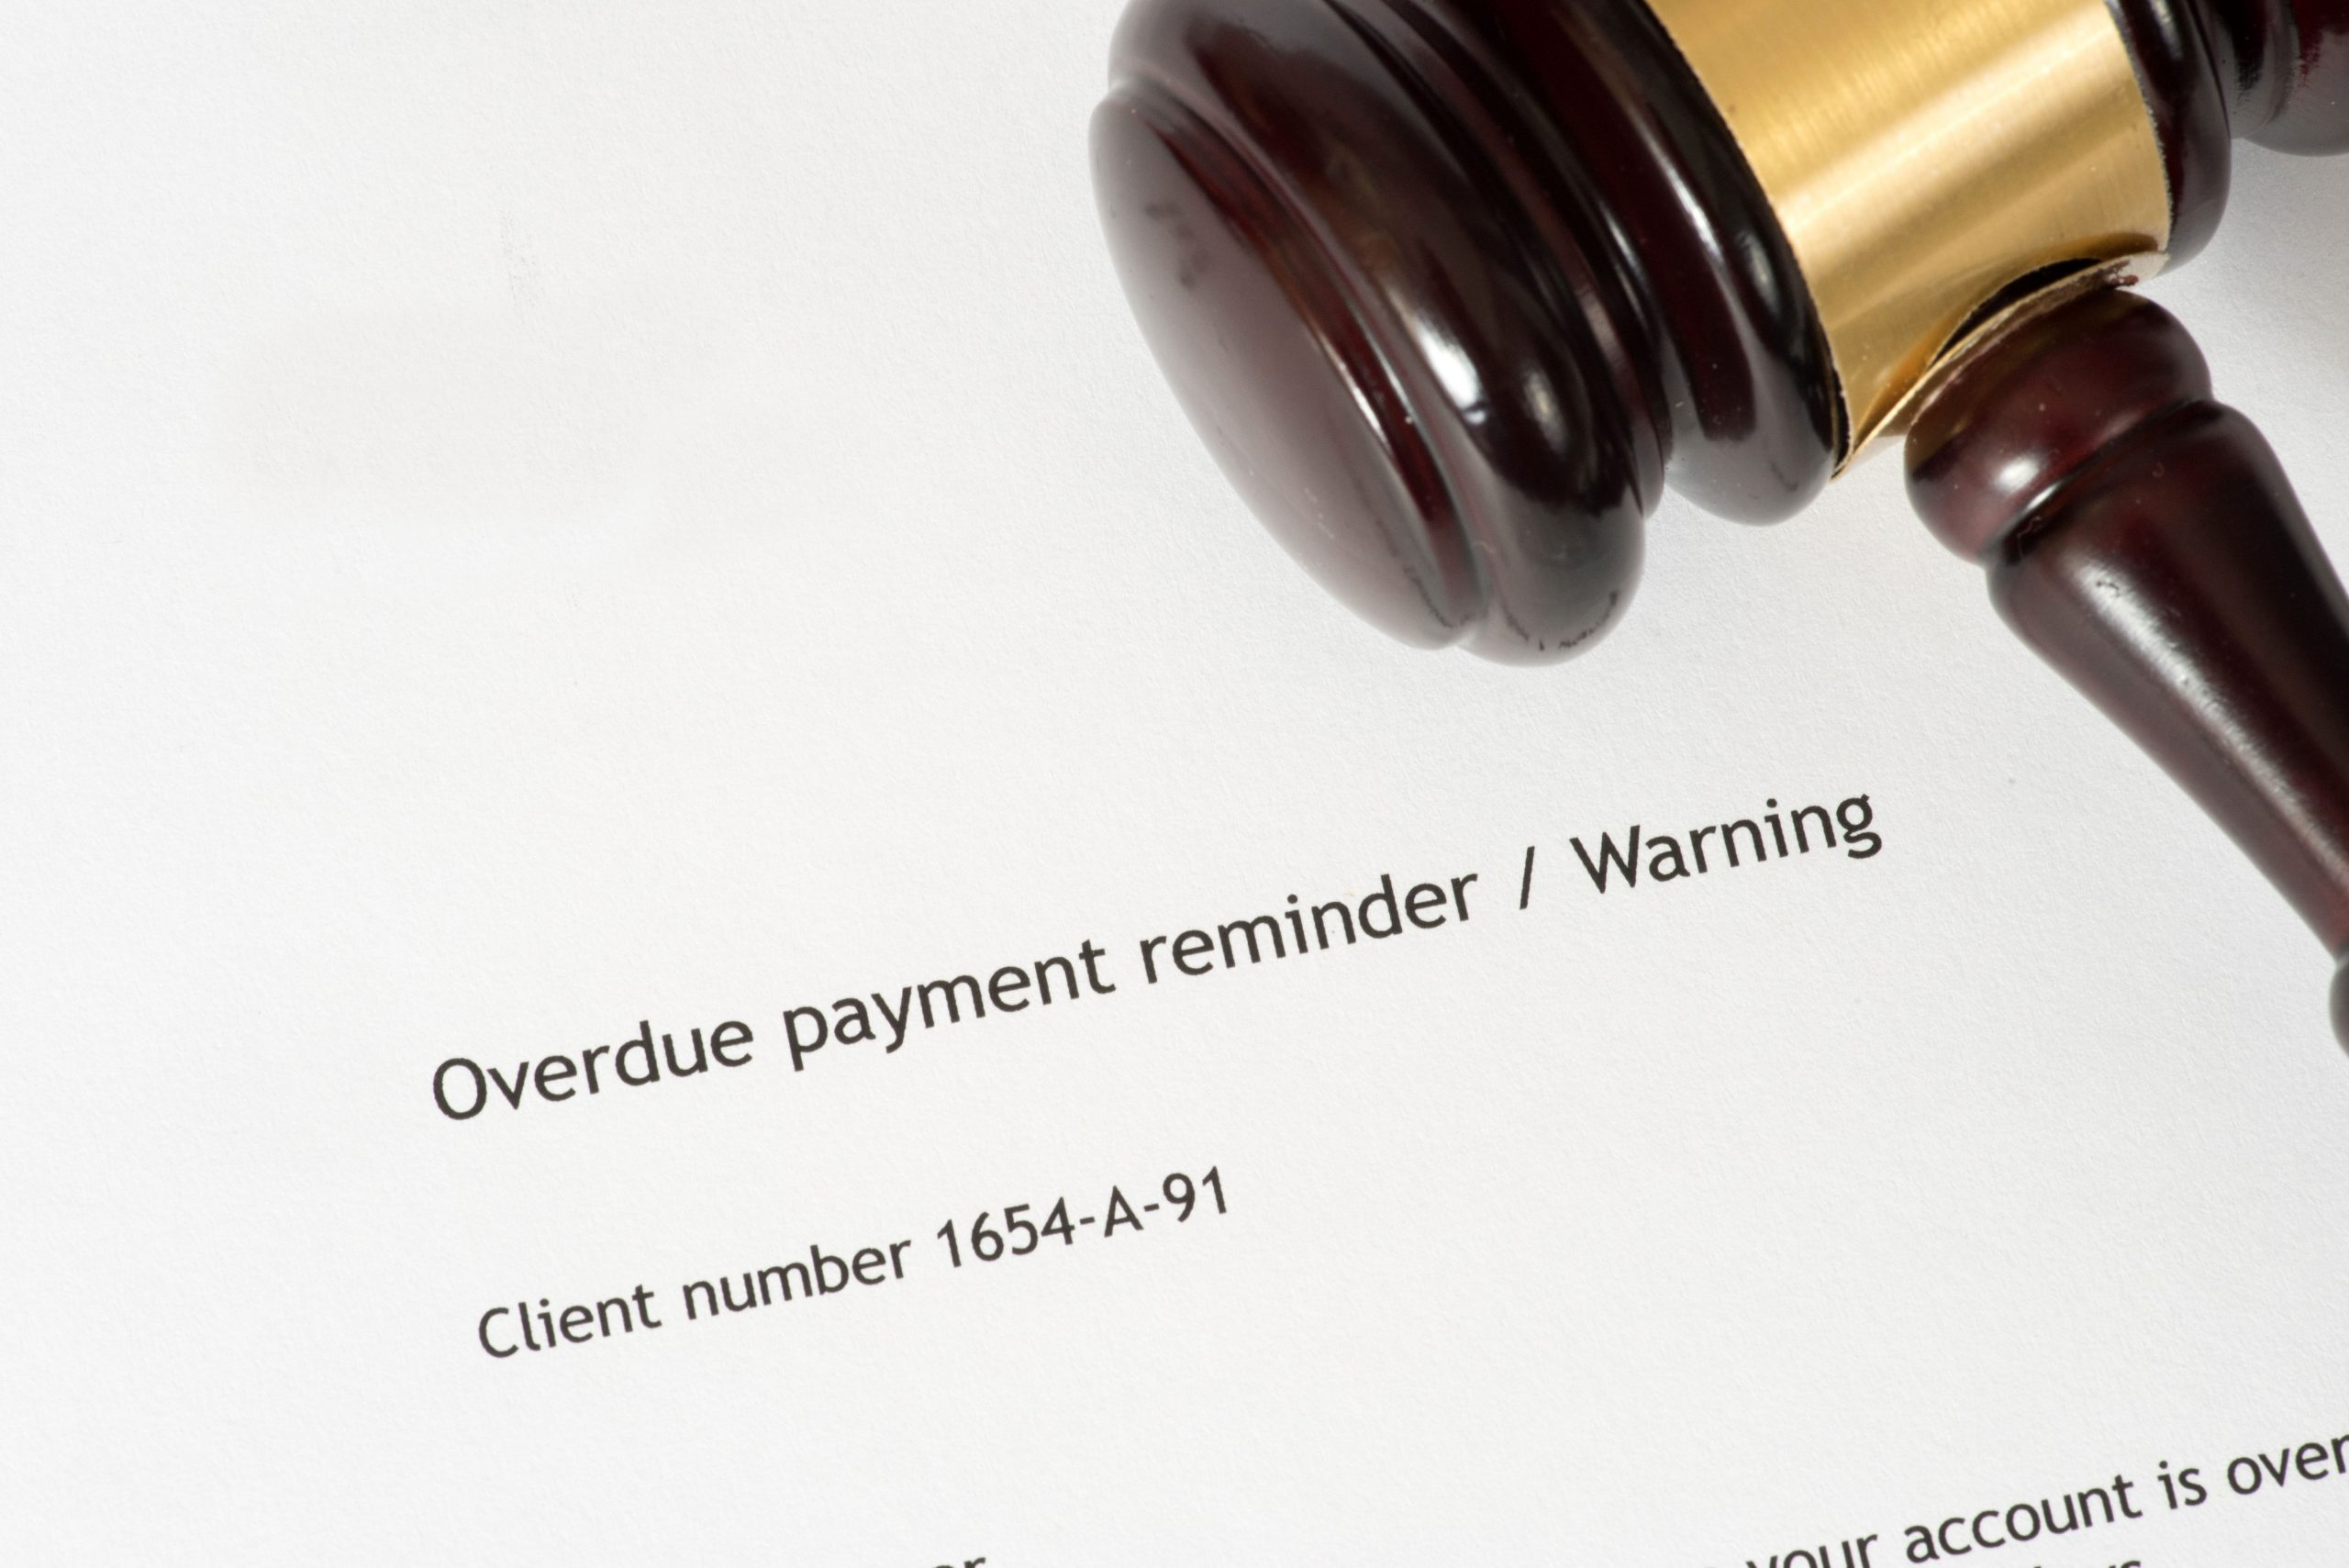 HMRC has restarted debt collection activities with taxpayers, initially focussing on people who are least affected by Covid-19